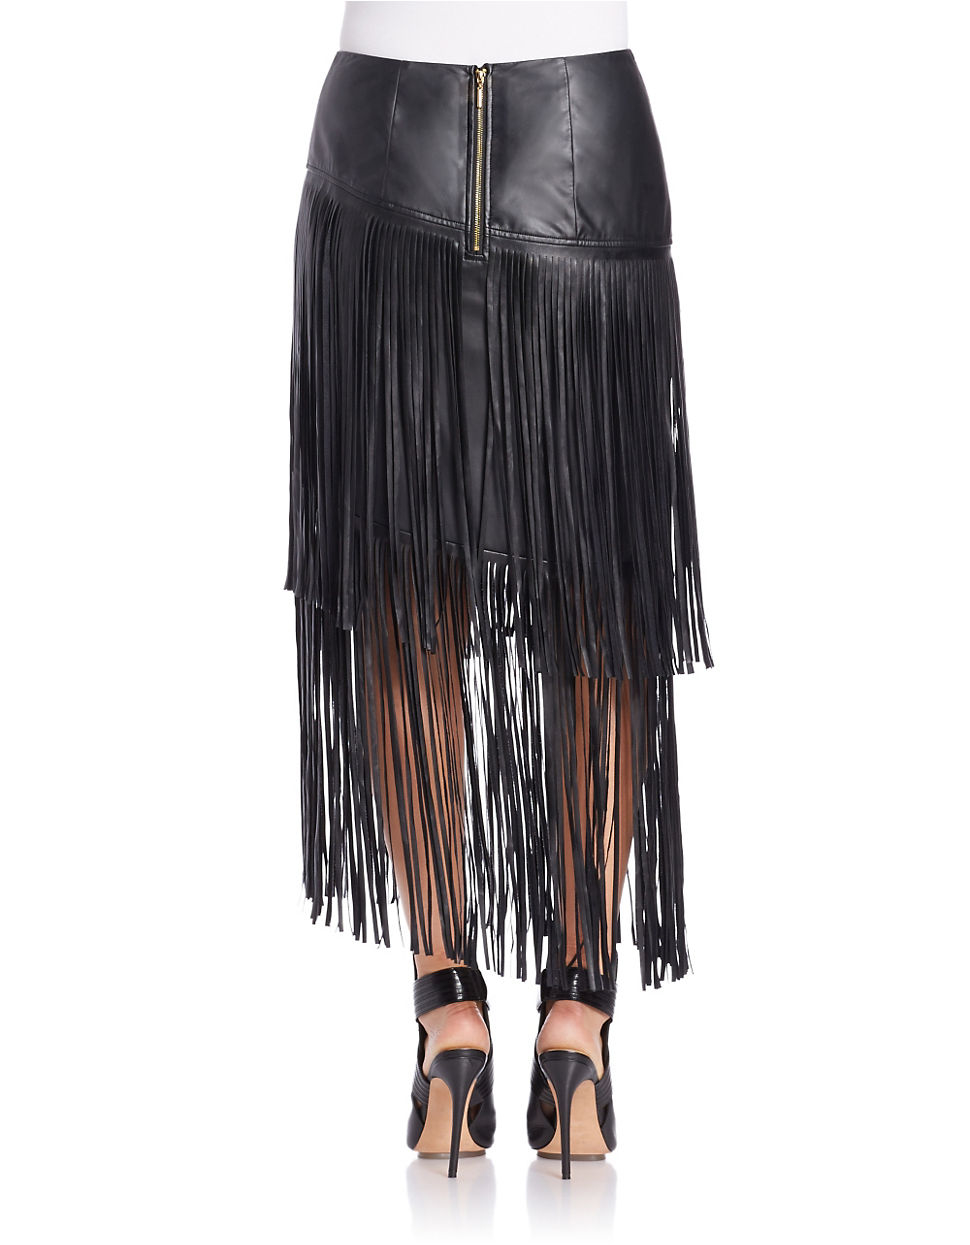 kensie fringed faux leather skirt in black lyst